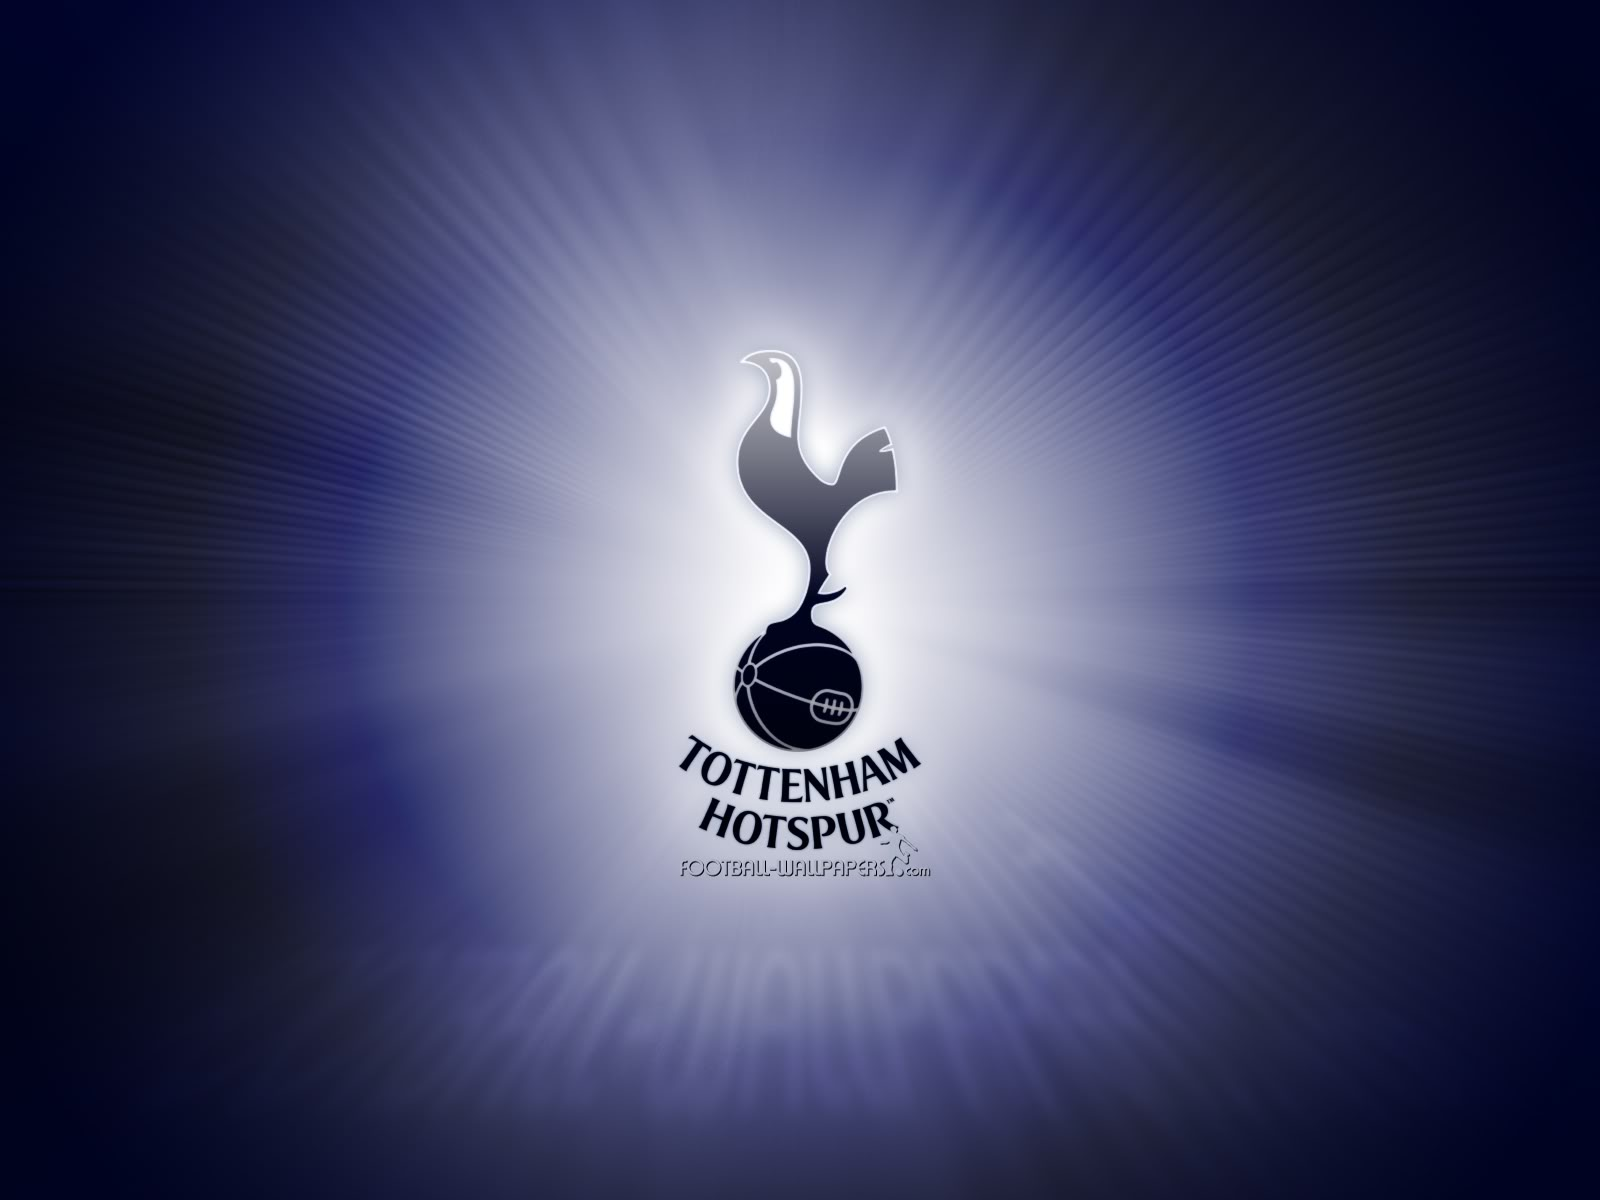 Tottenham wallpaper logo free downloads 11768 wallpaper walldiskpaper download tottenham wallpaper logo free downloads full size voltagebd Image collections